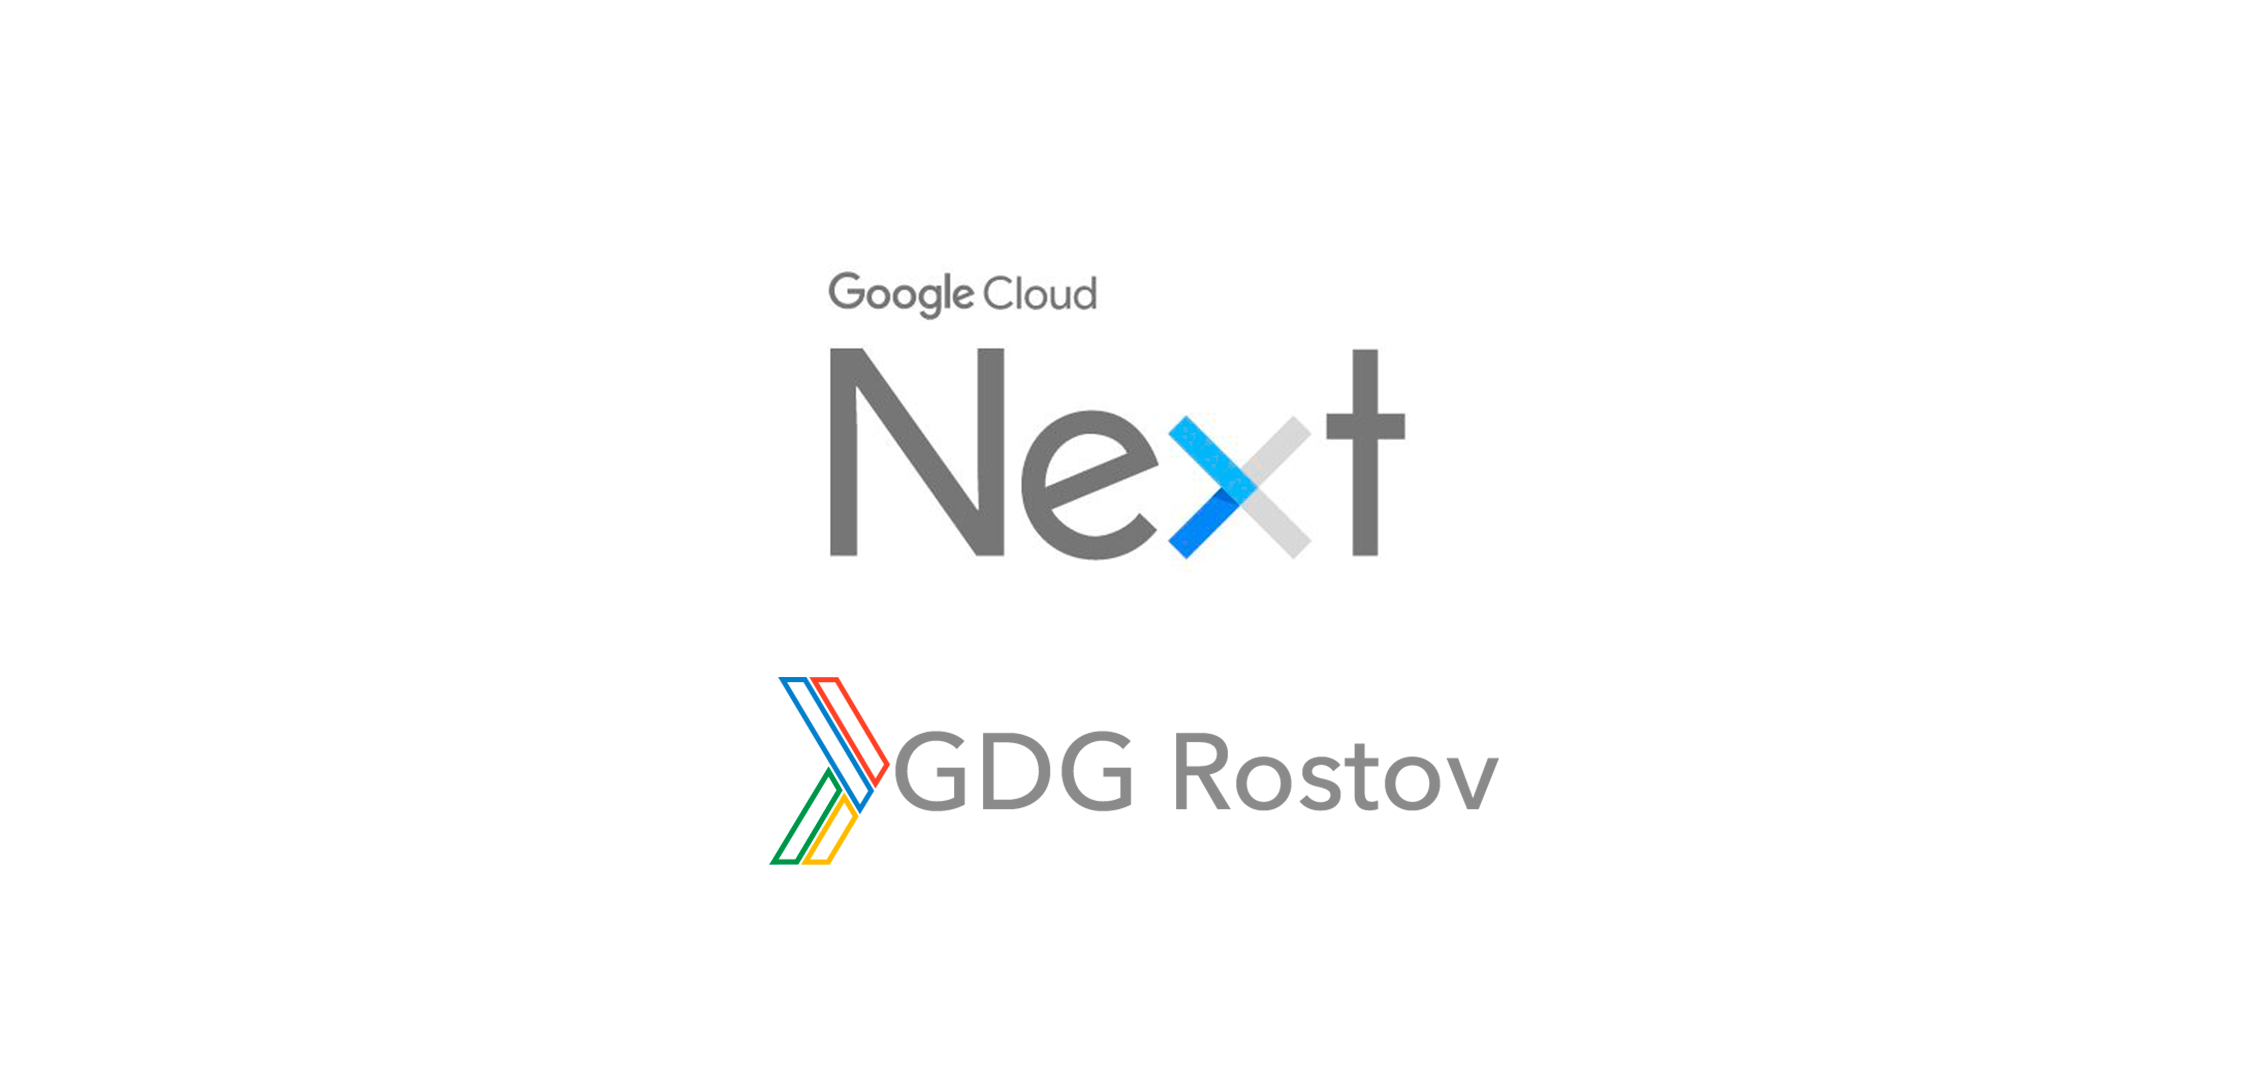 GDG Cloud Next Extended